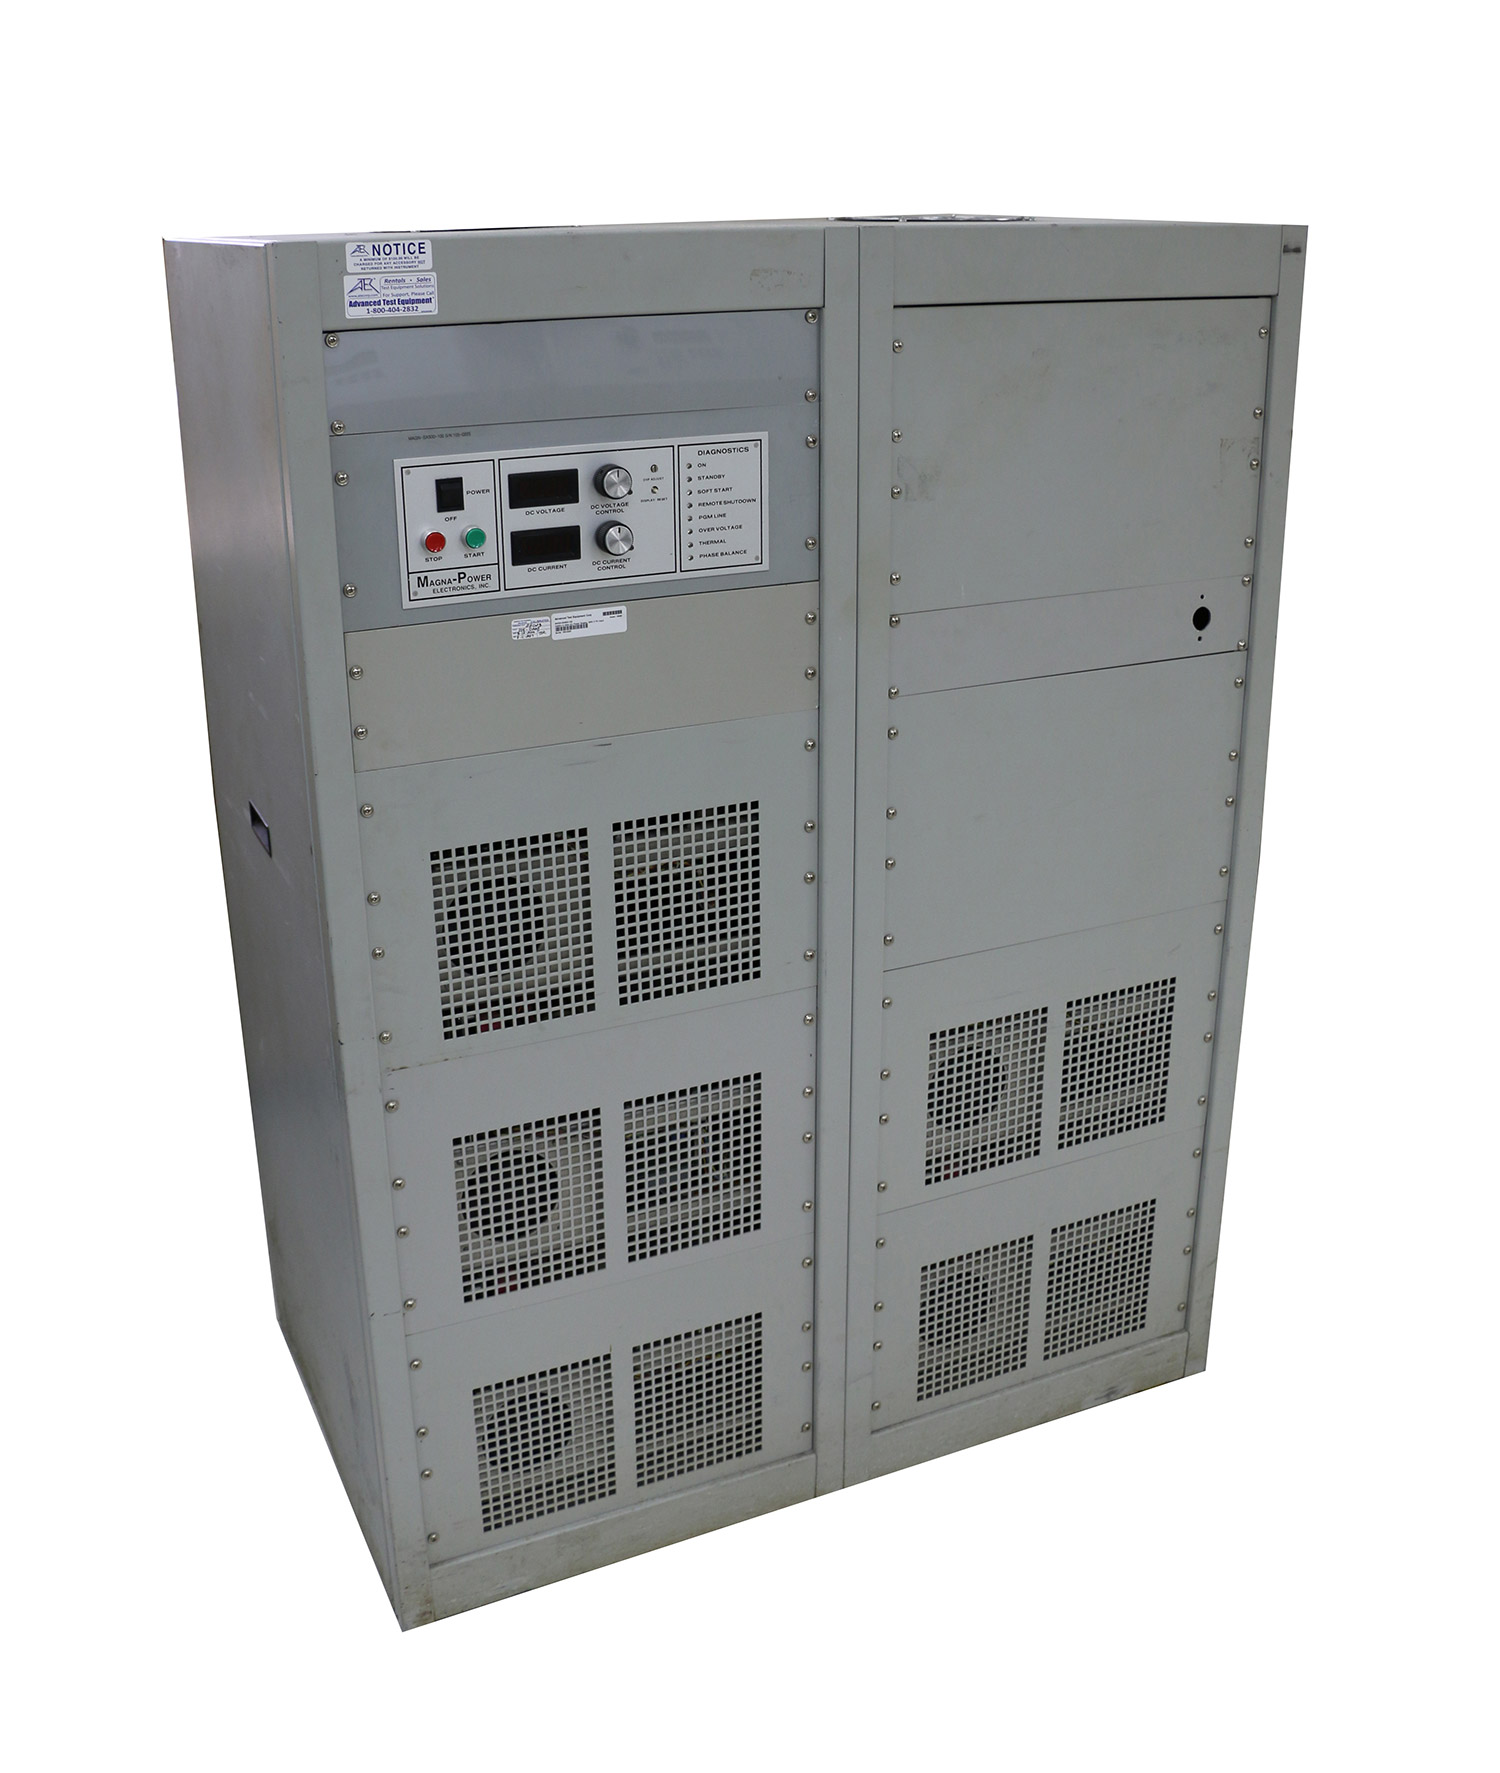 Dc Power Supply Atec Rentals In Series To Produce Two Output Voltages The Voltage Is 240 V Magna Sx500 100 Programmable Source